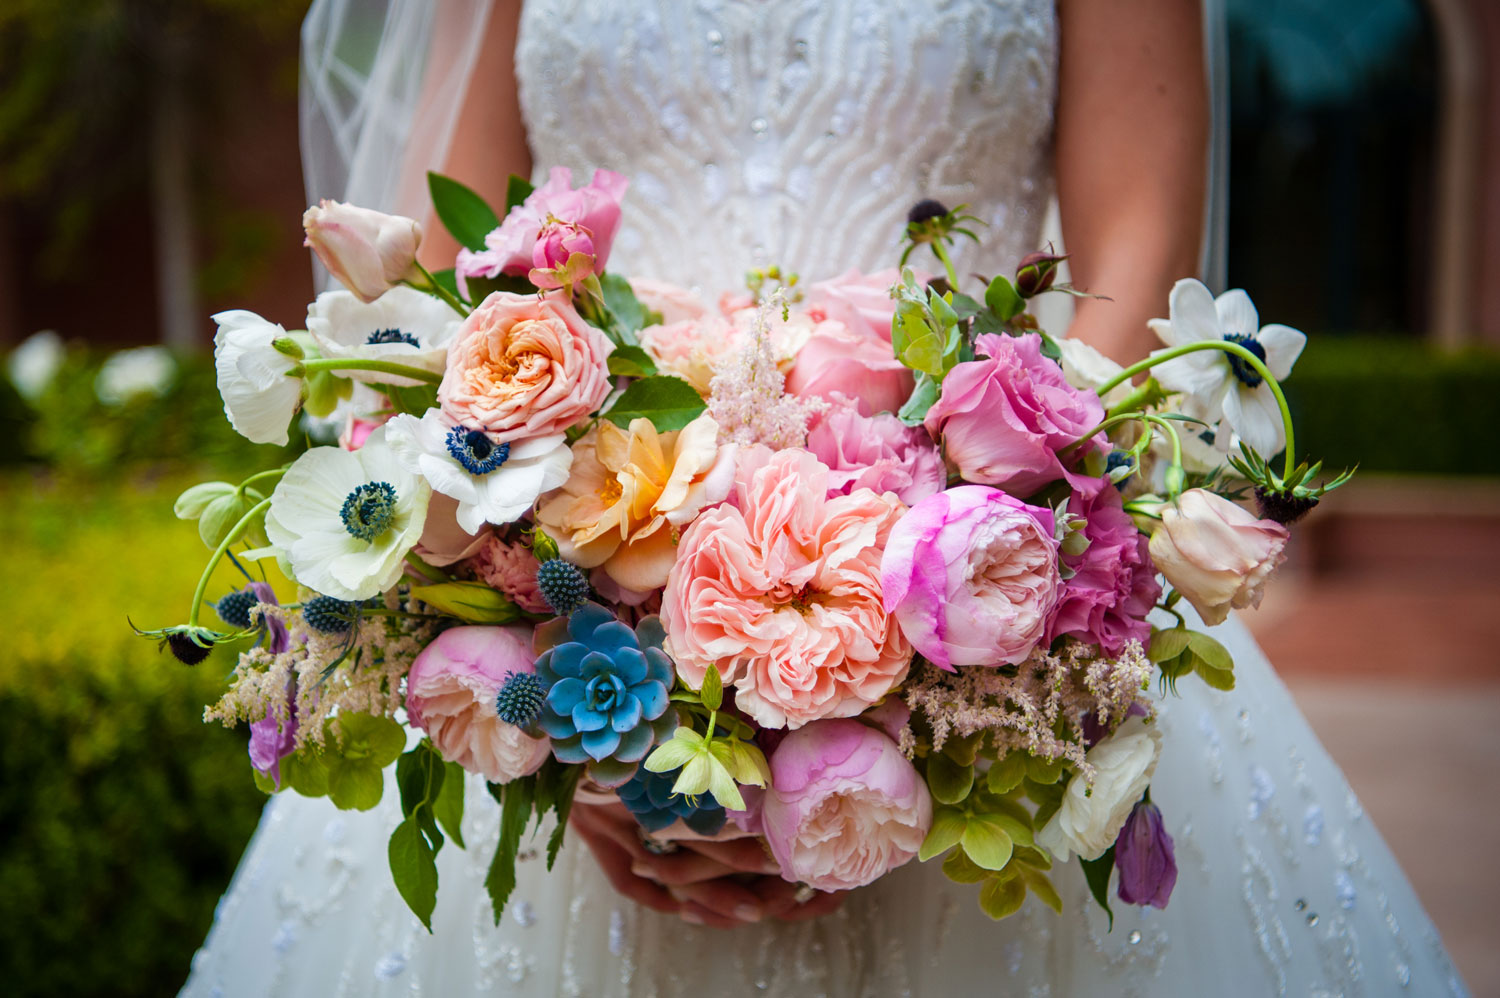 large bridal bouquet with pink peonies, peach garden roses, blue succulent, anemones,